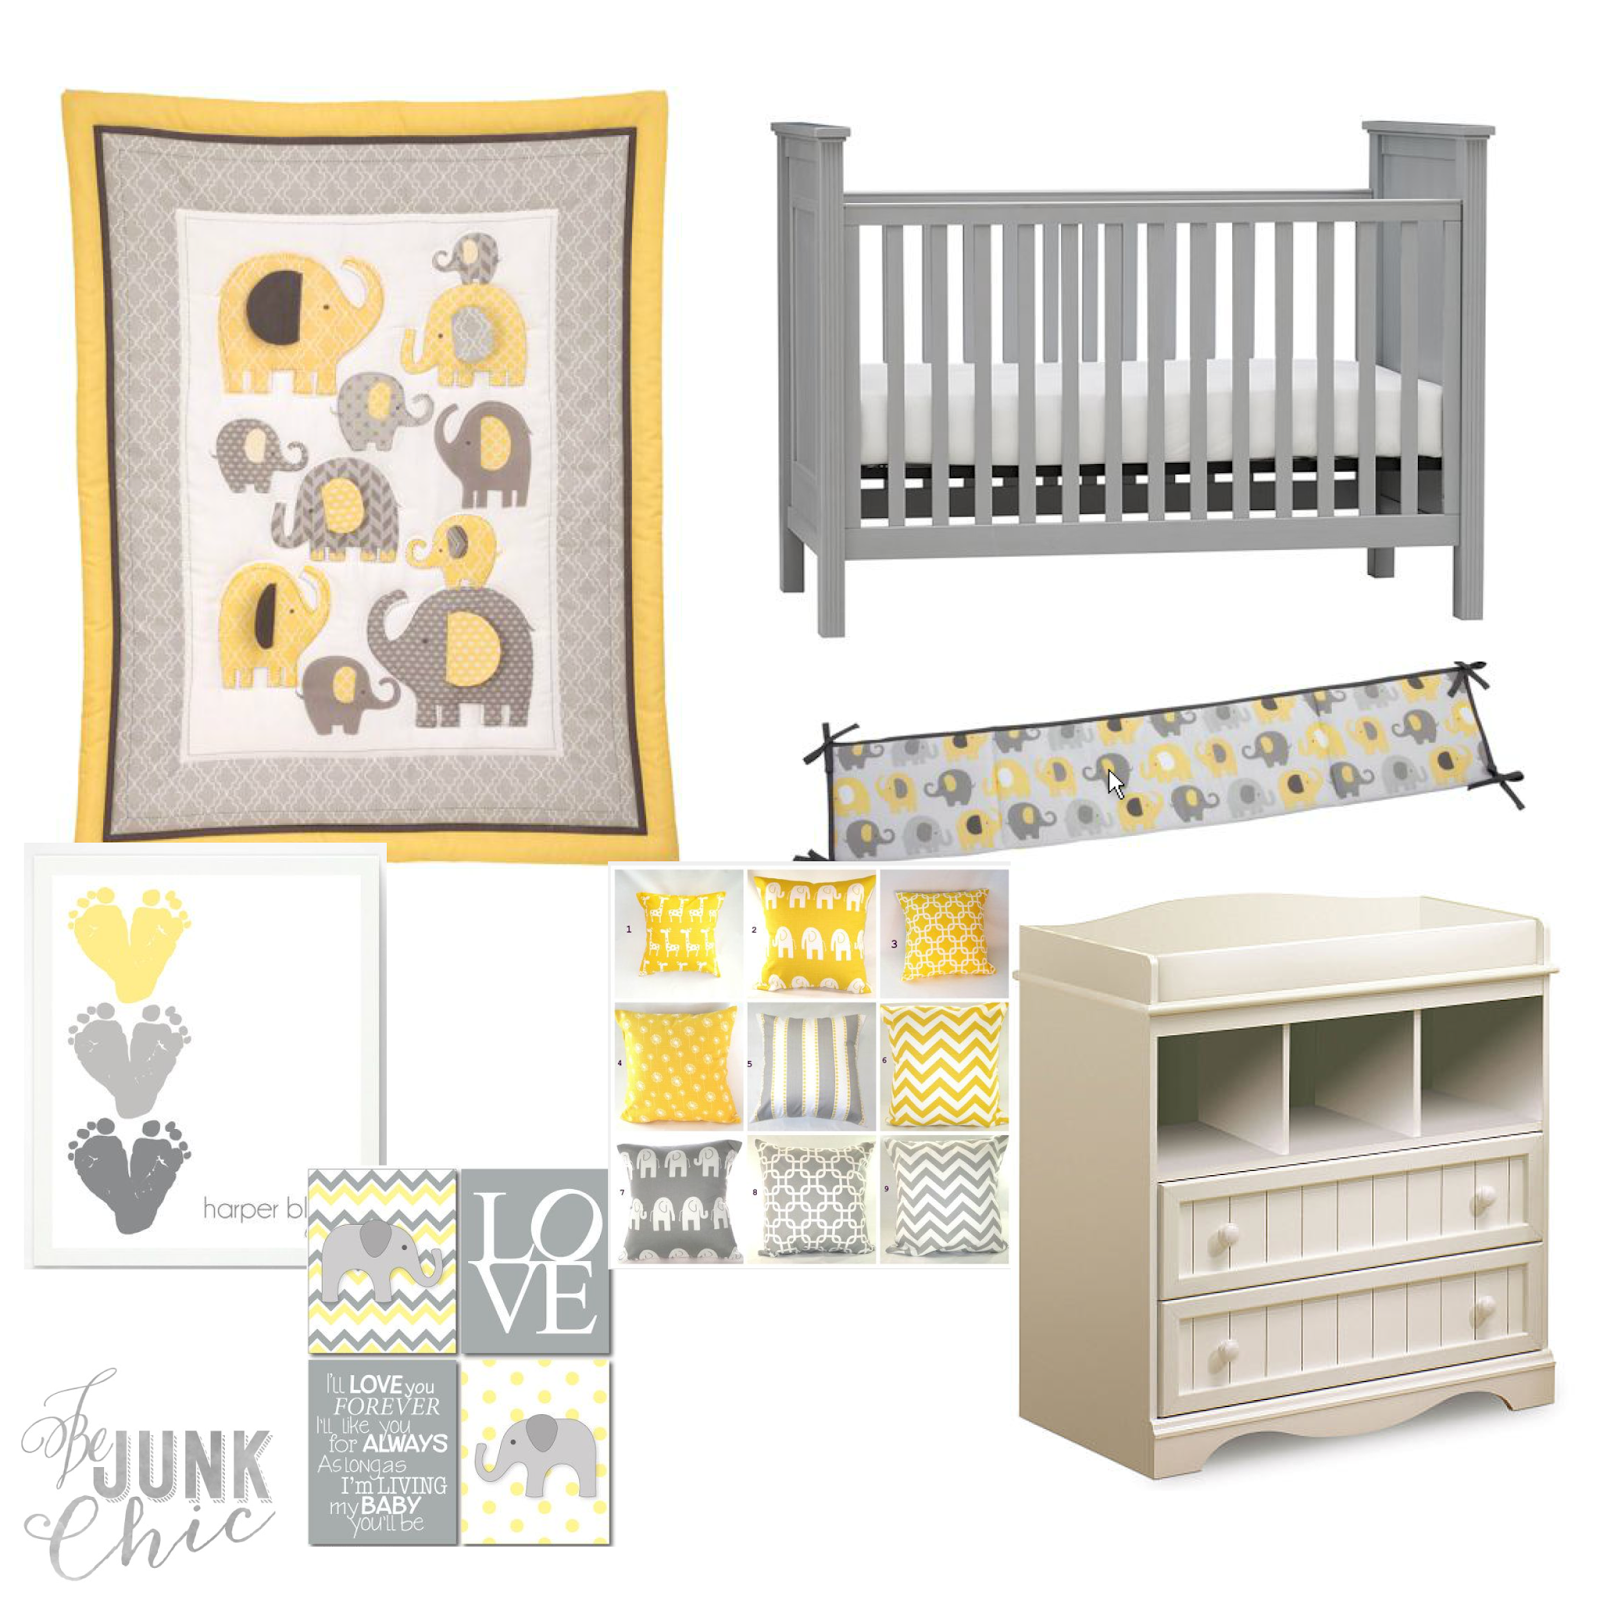 Be Junk Chic Elephant Yellow Grey Nursery